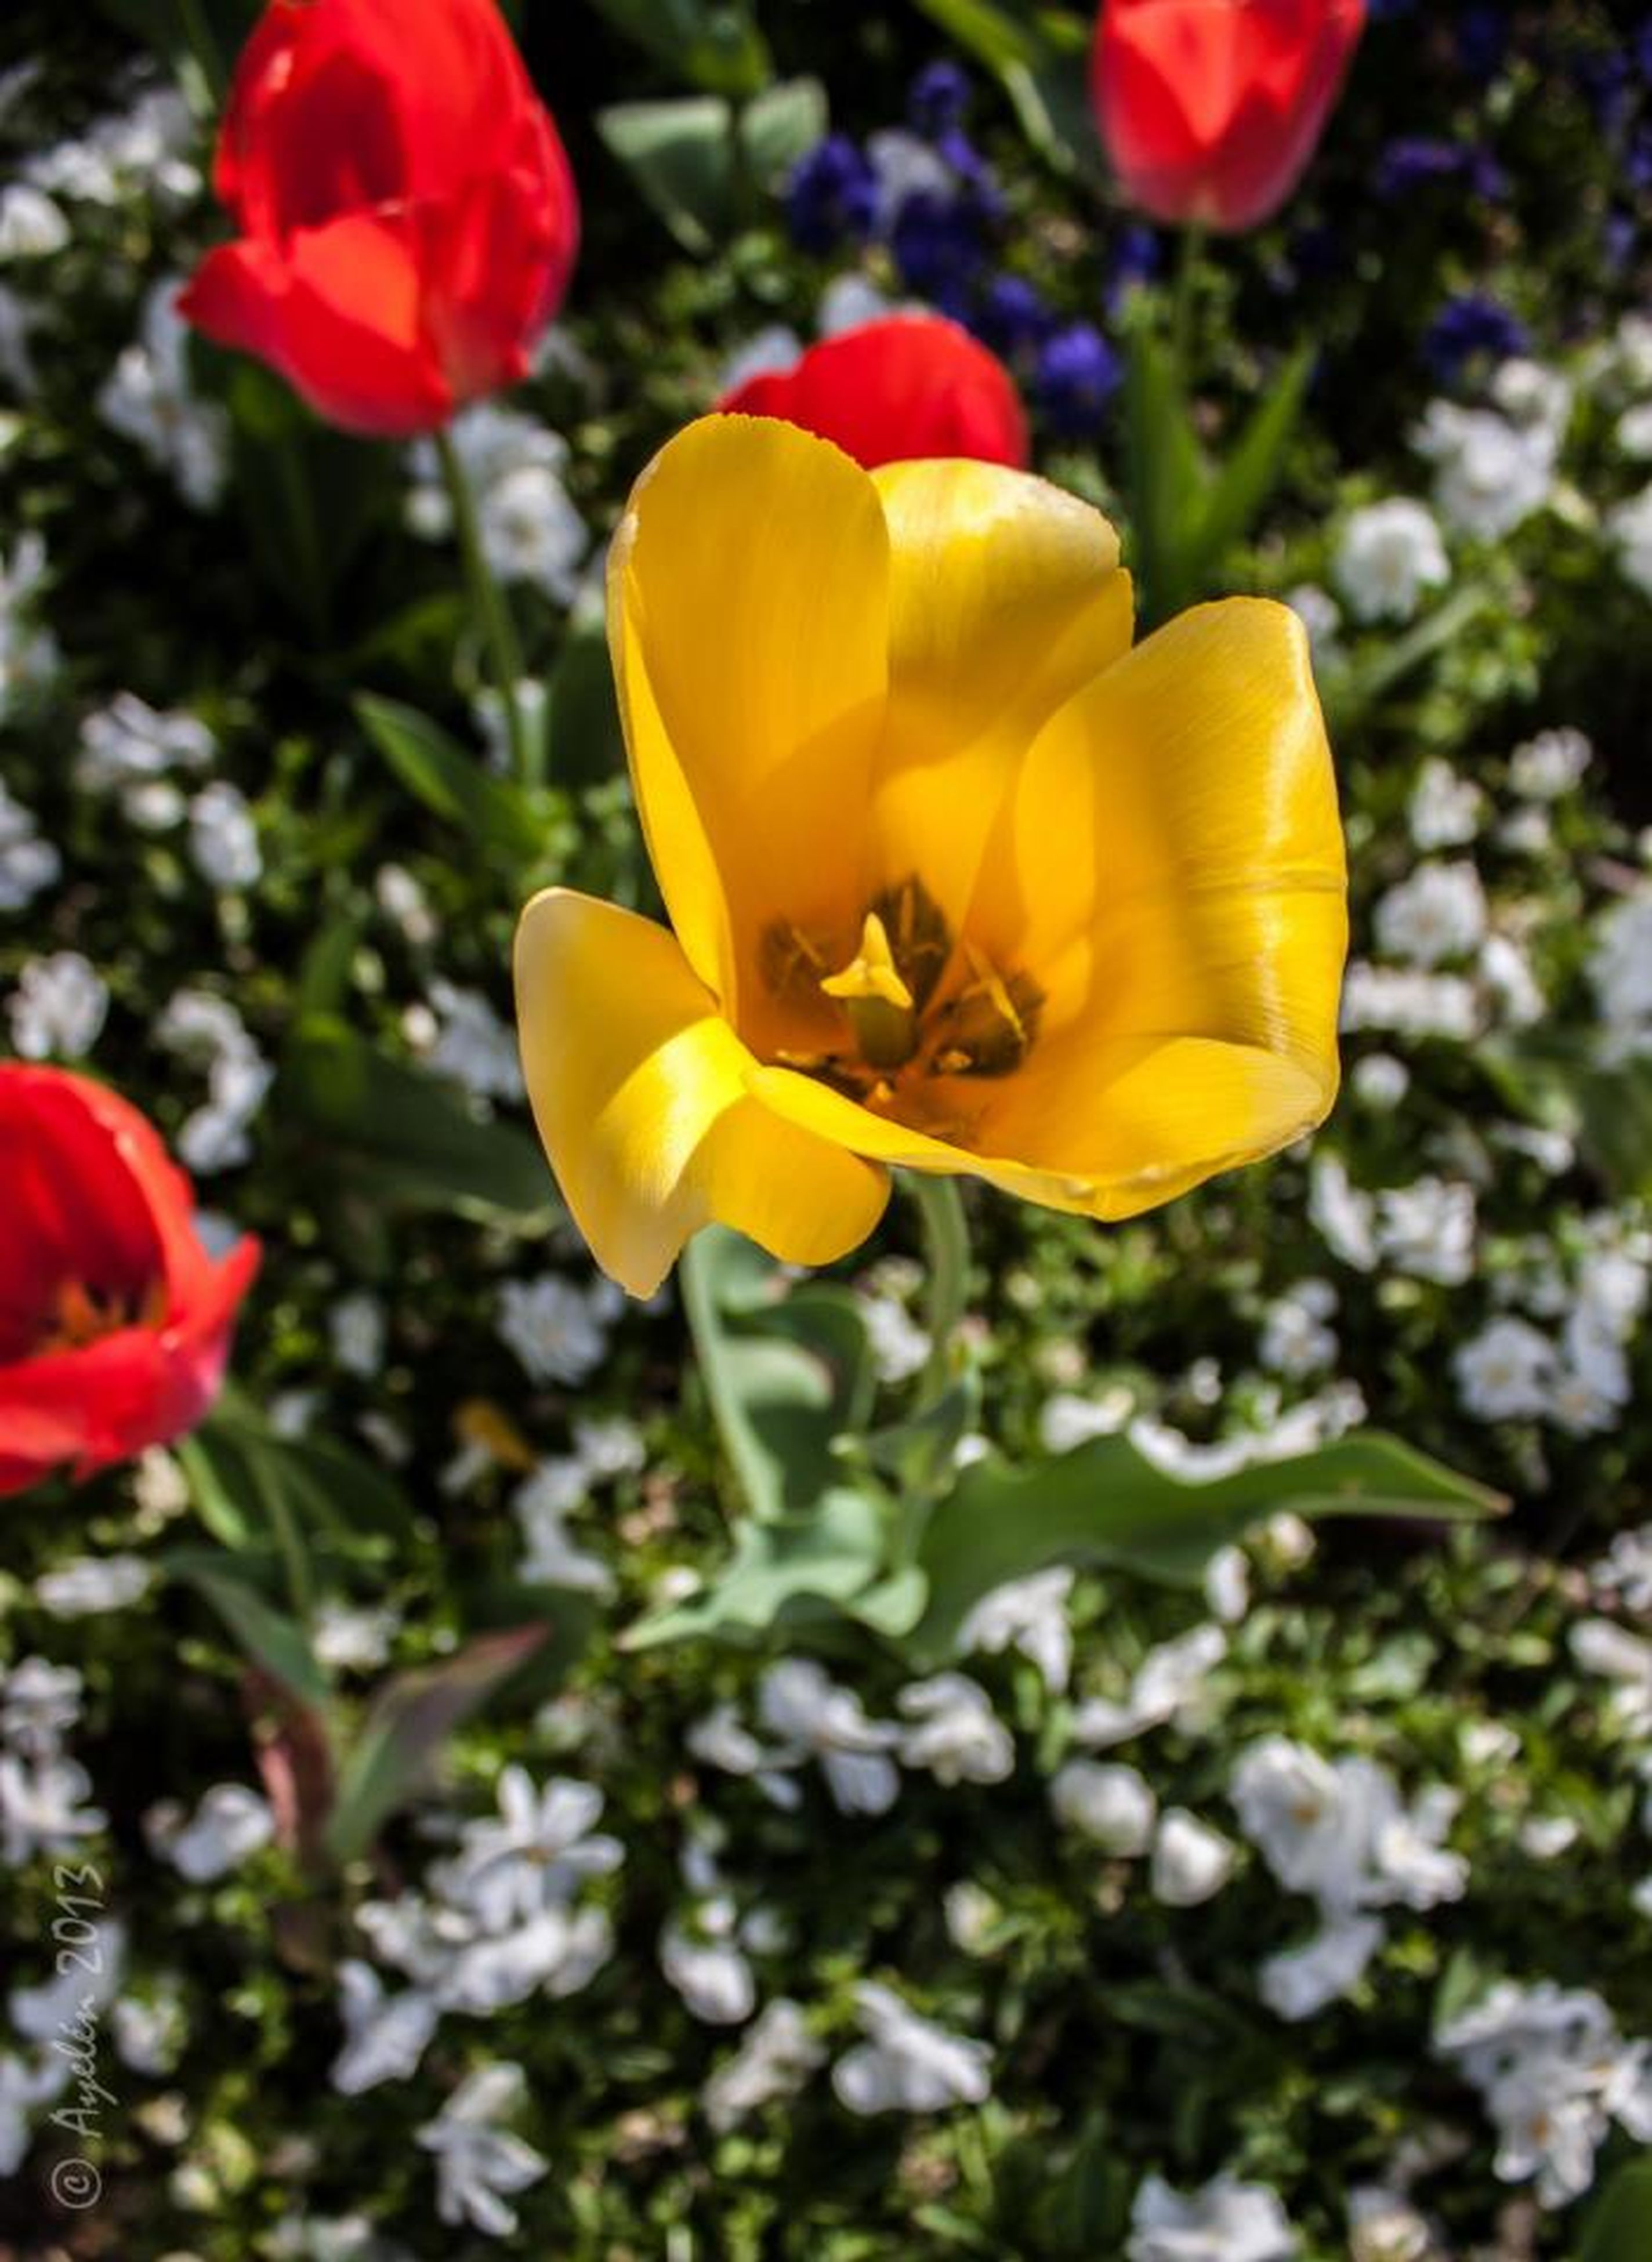 flower, petal, freshness, flower head, fragility, beauty in nature, yellow, growth, blooming, focus on foreground, close-up, nature, plant, in bloom, red, park - man made space, blossom, stem, pollen, day